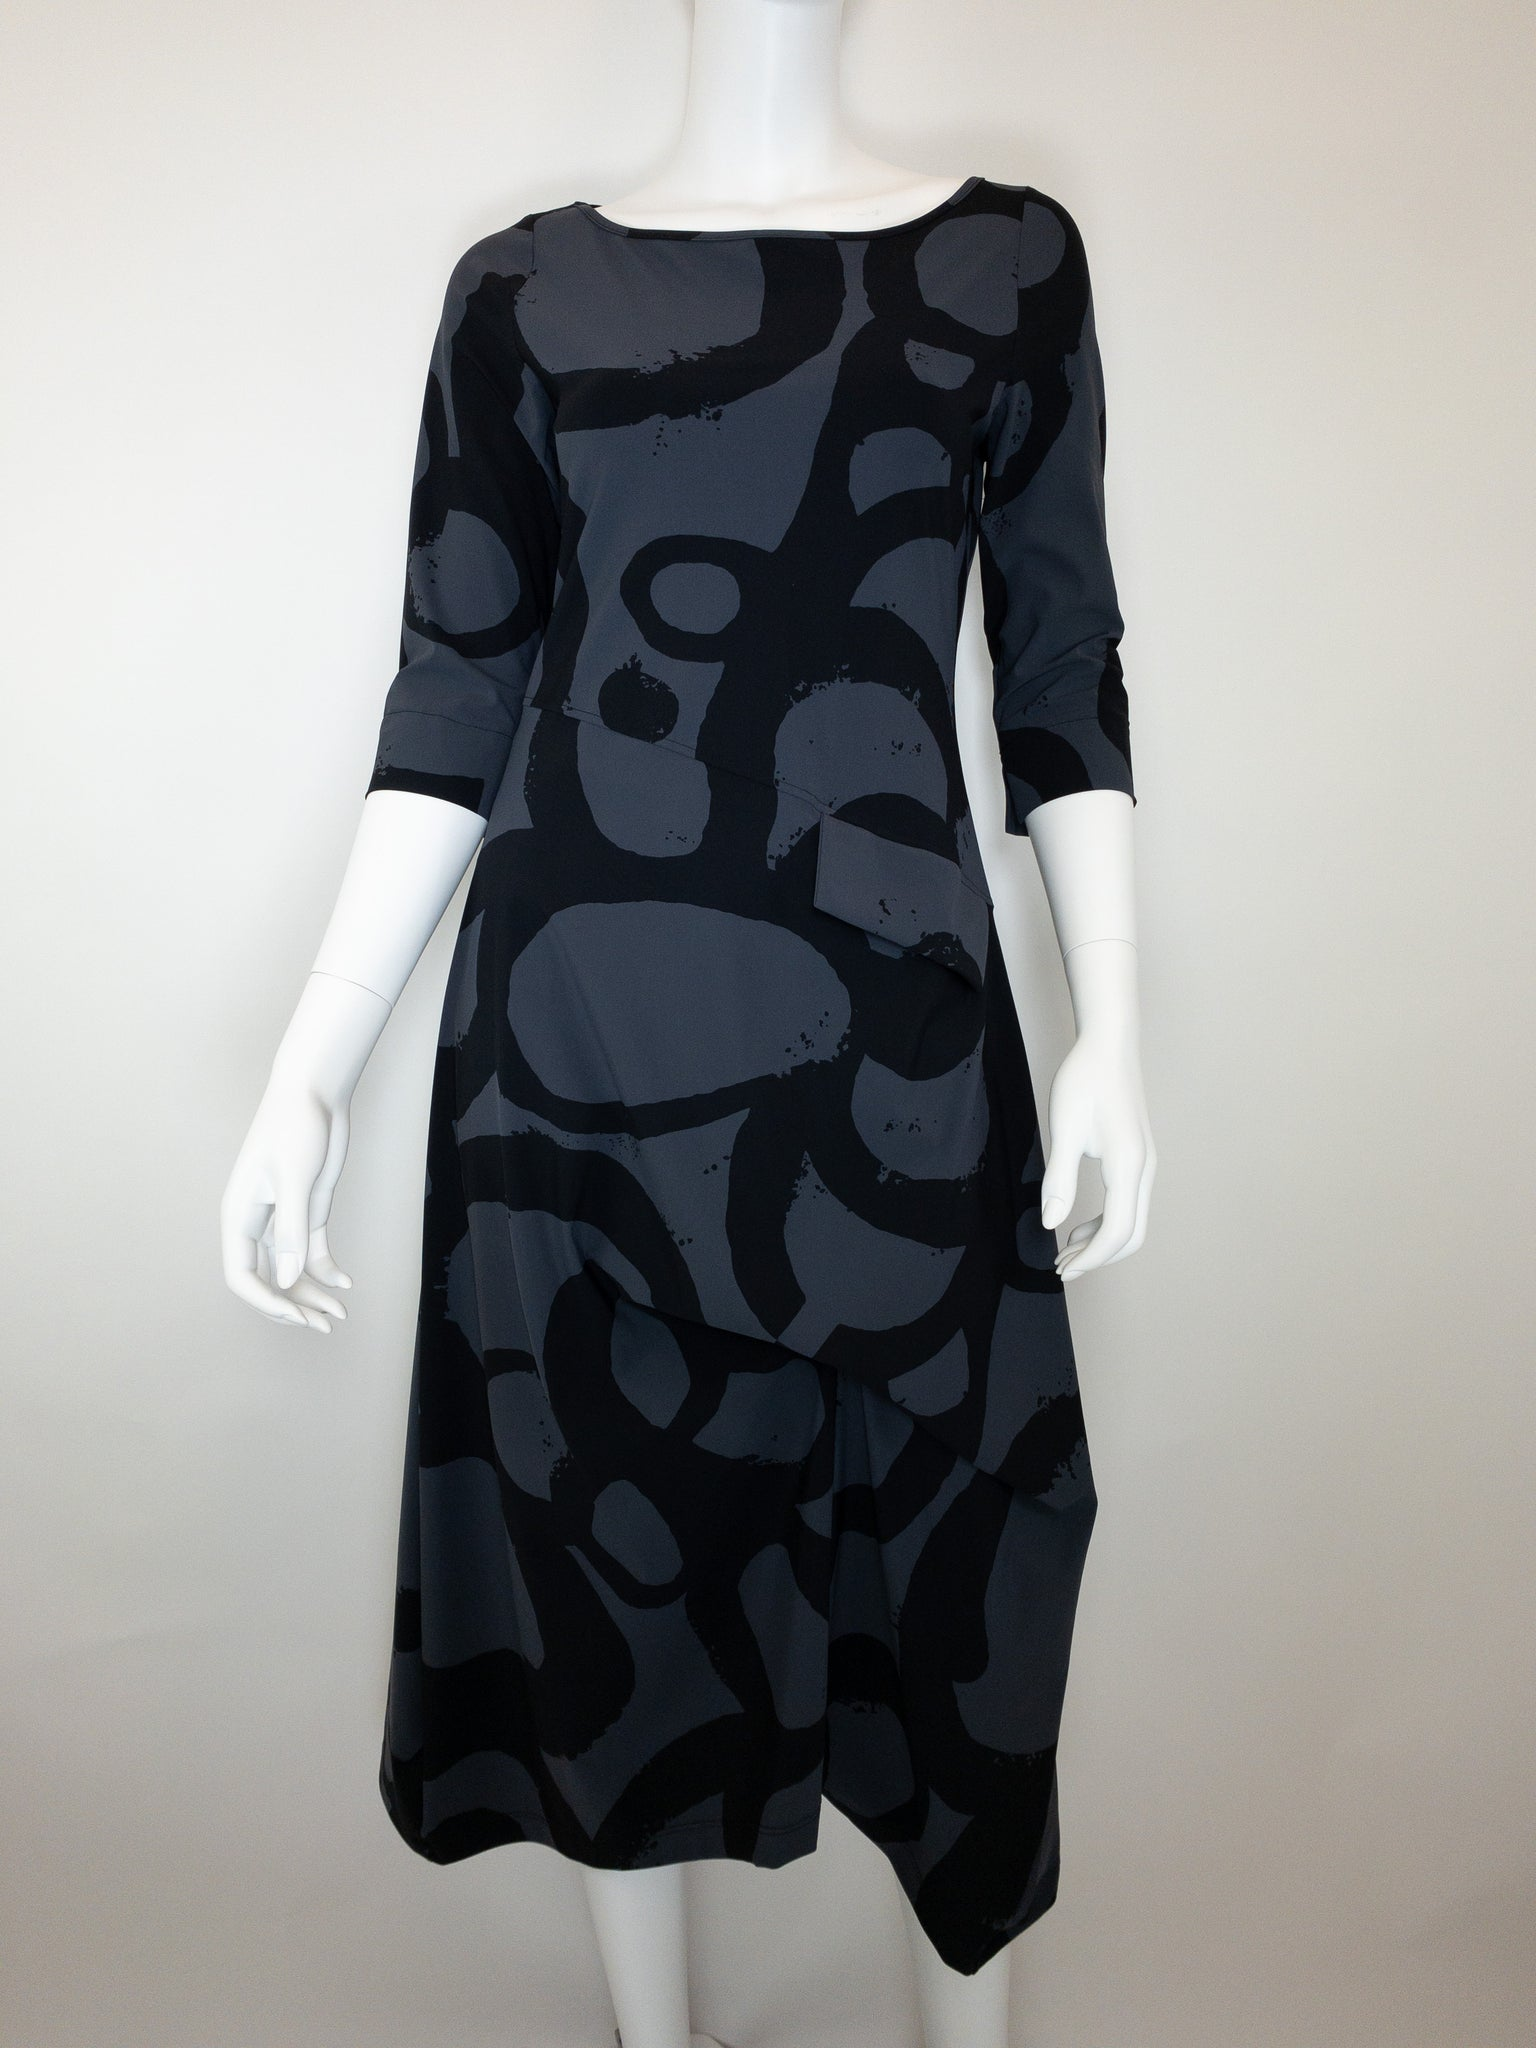 Fenwick Dress